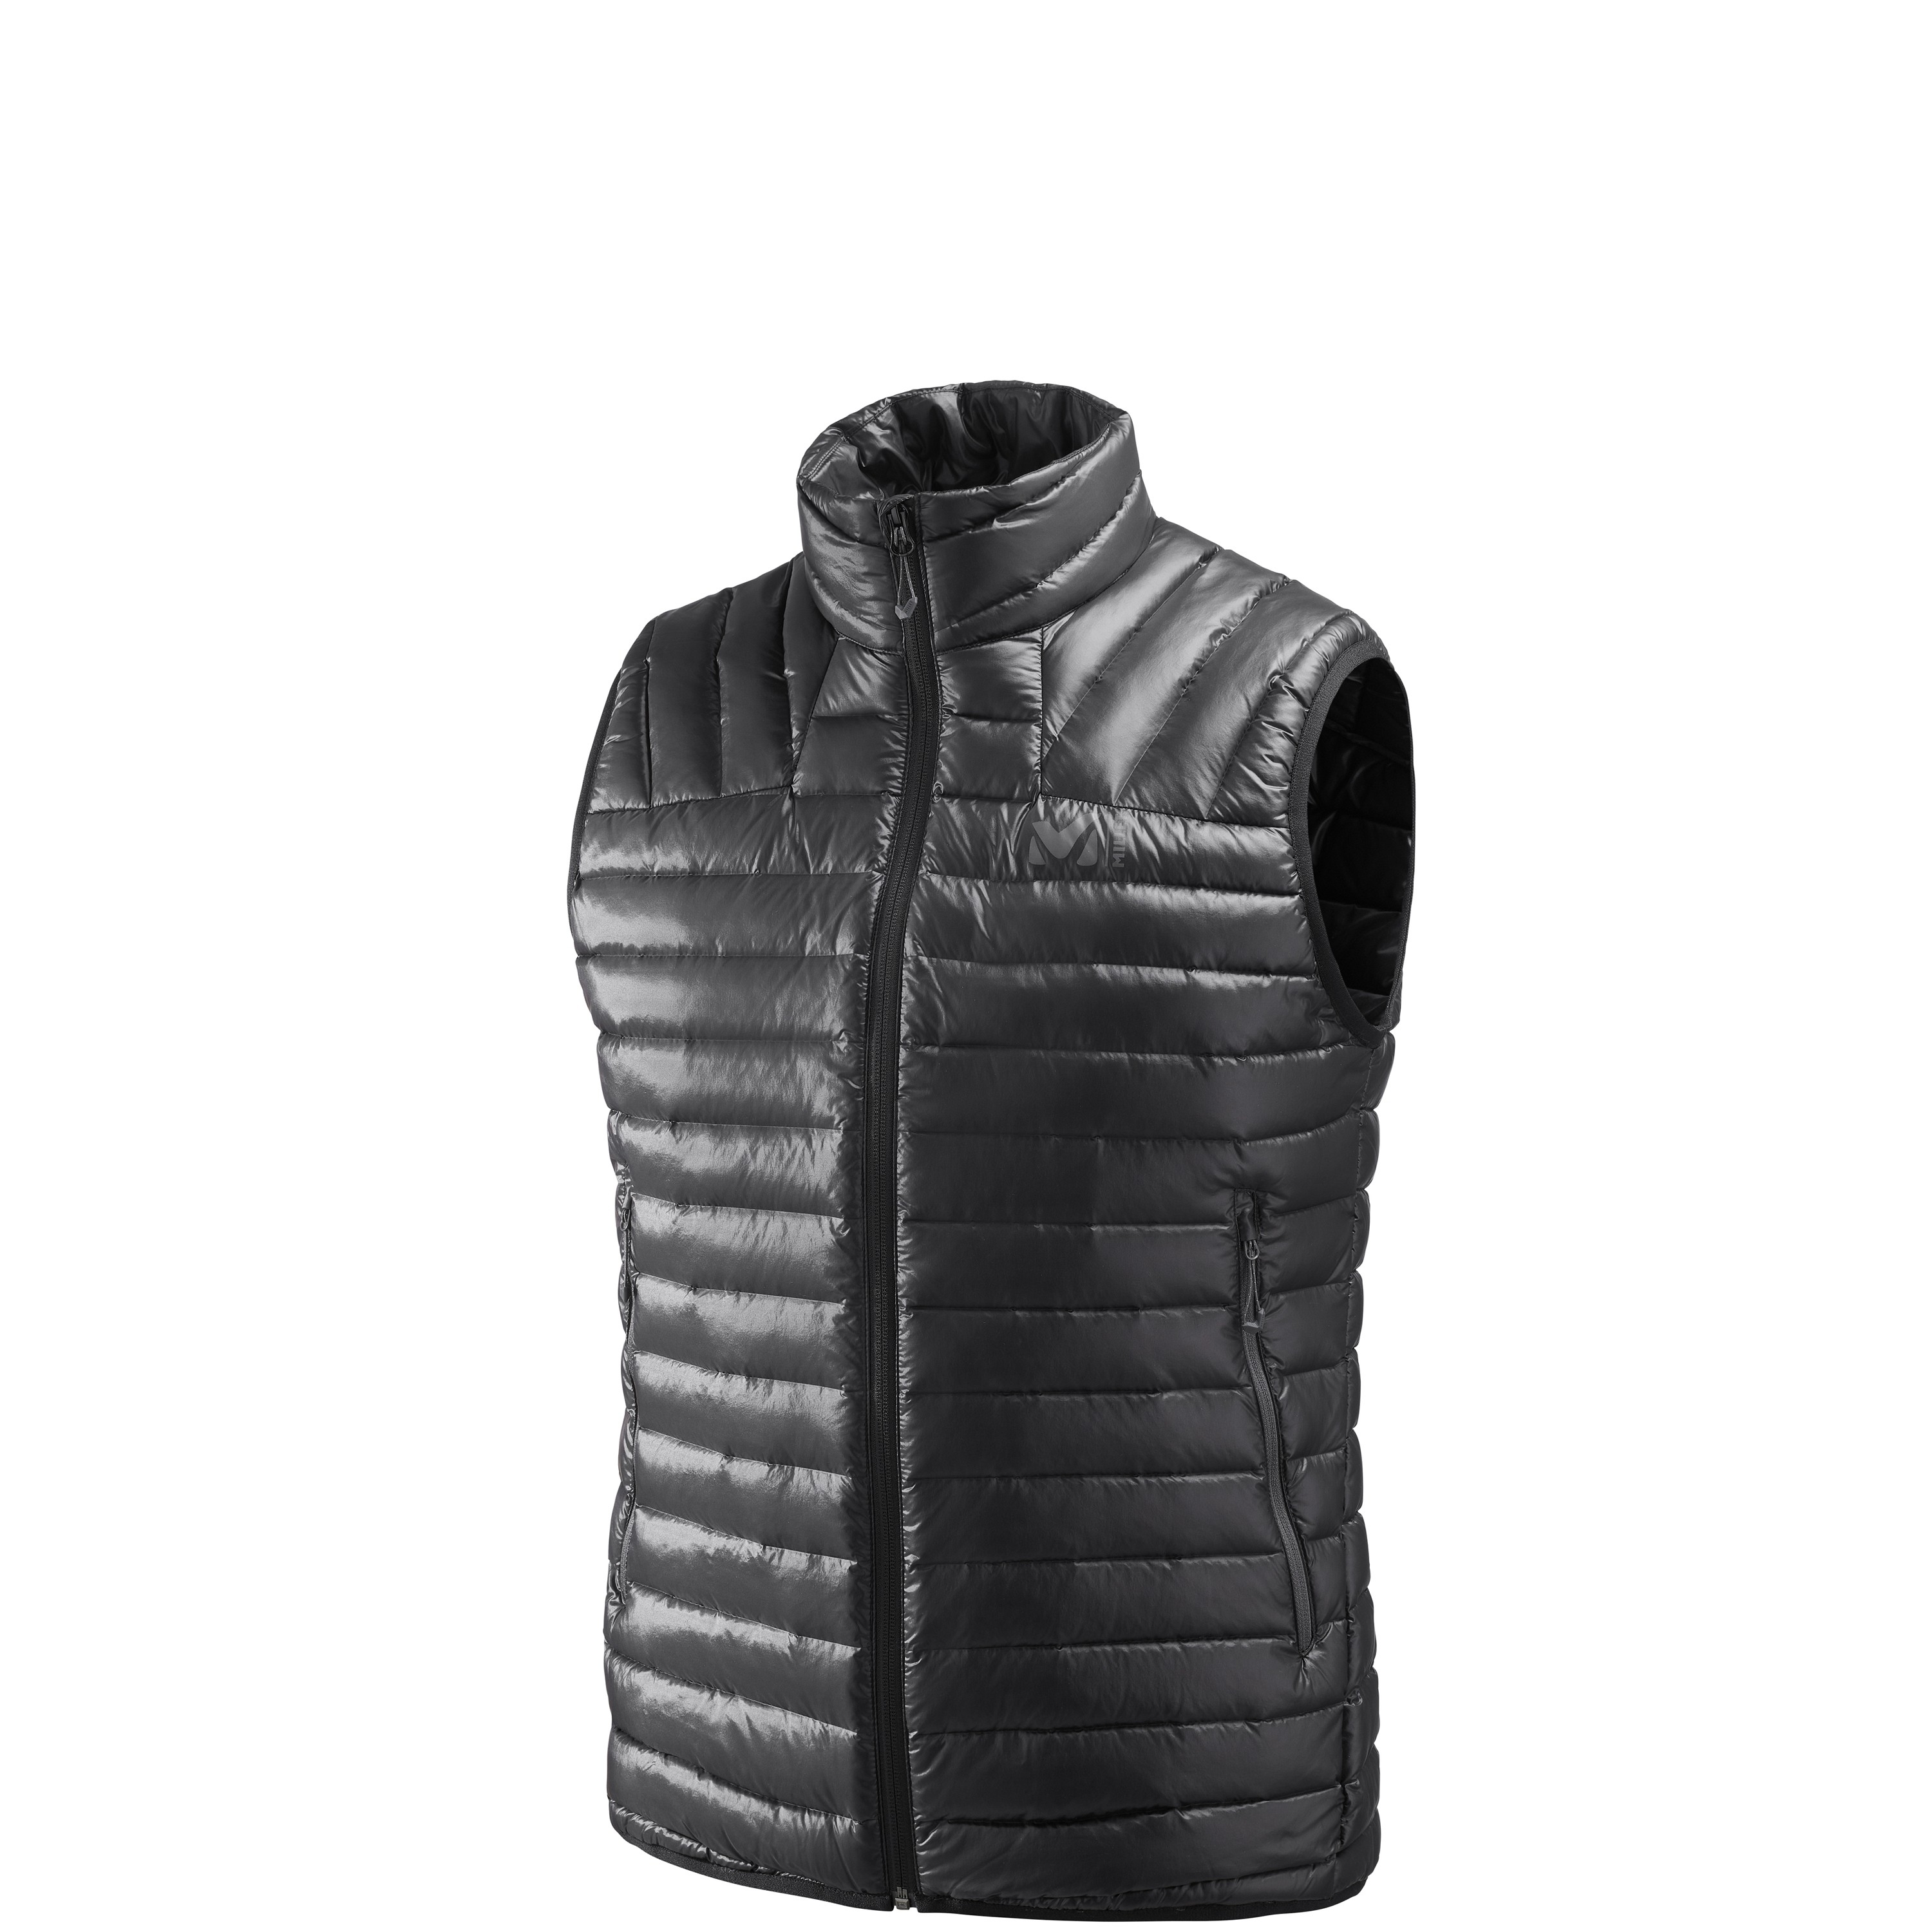 K SYNTH'X DOWN VEST